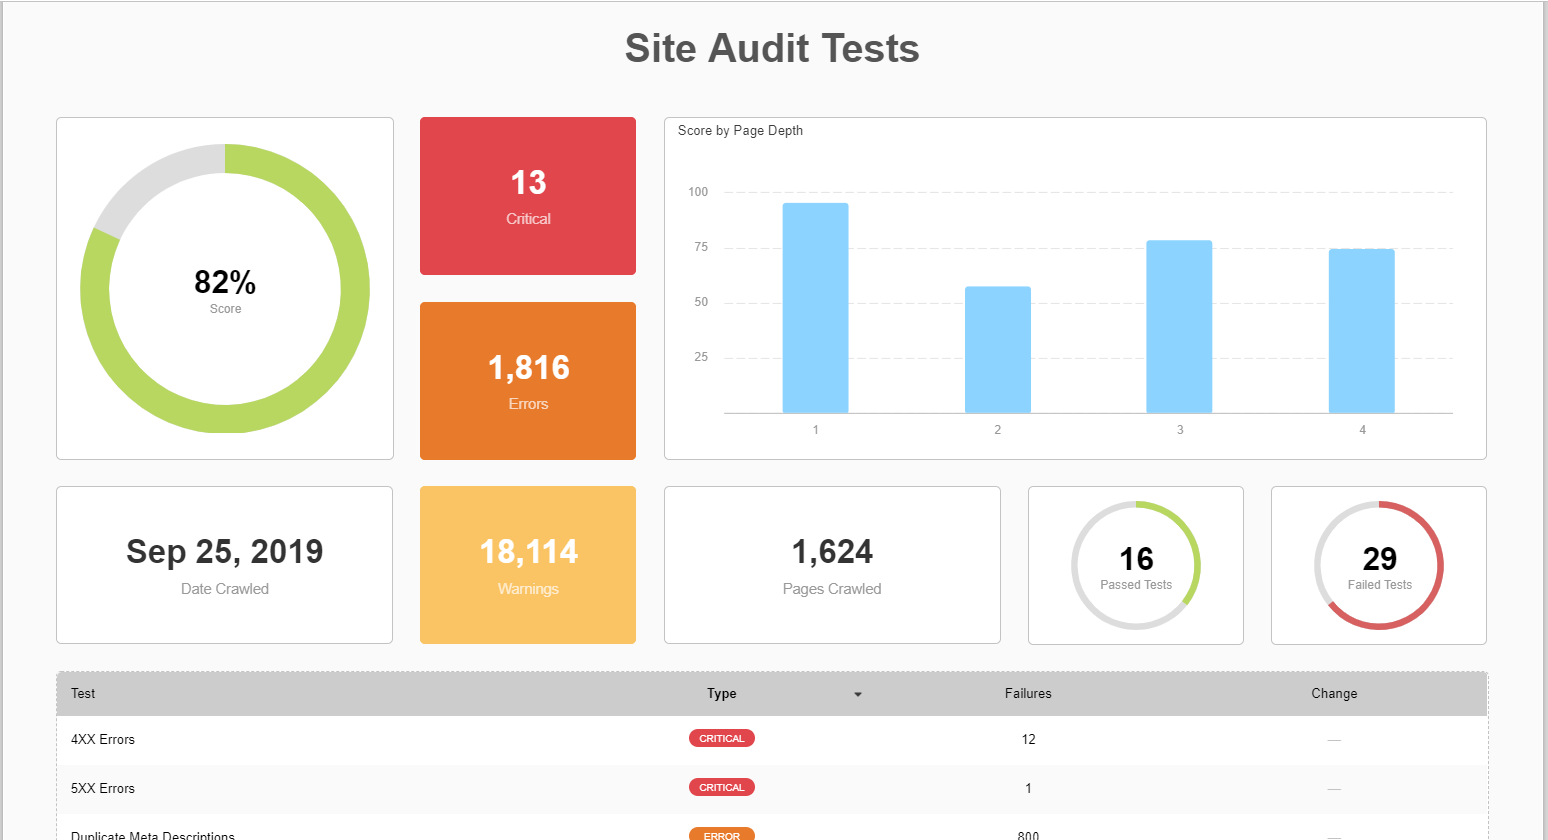 Report page for site audit tests